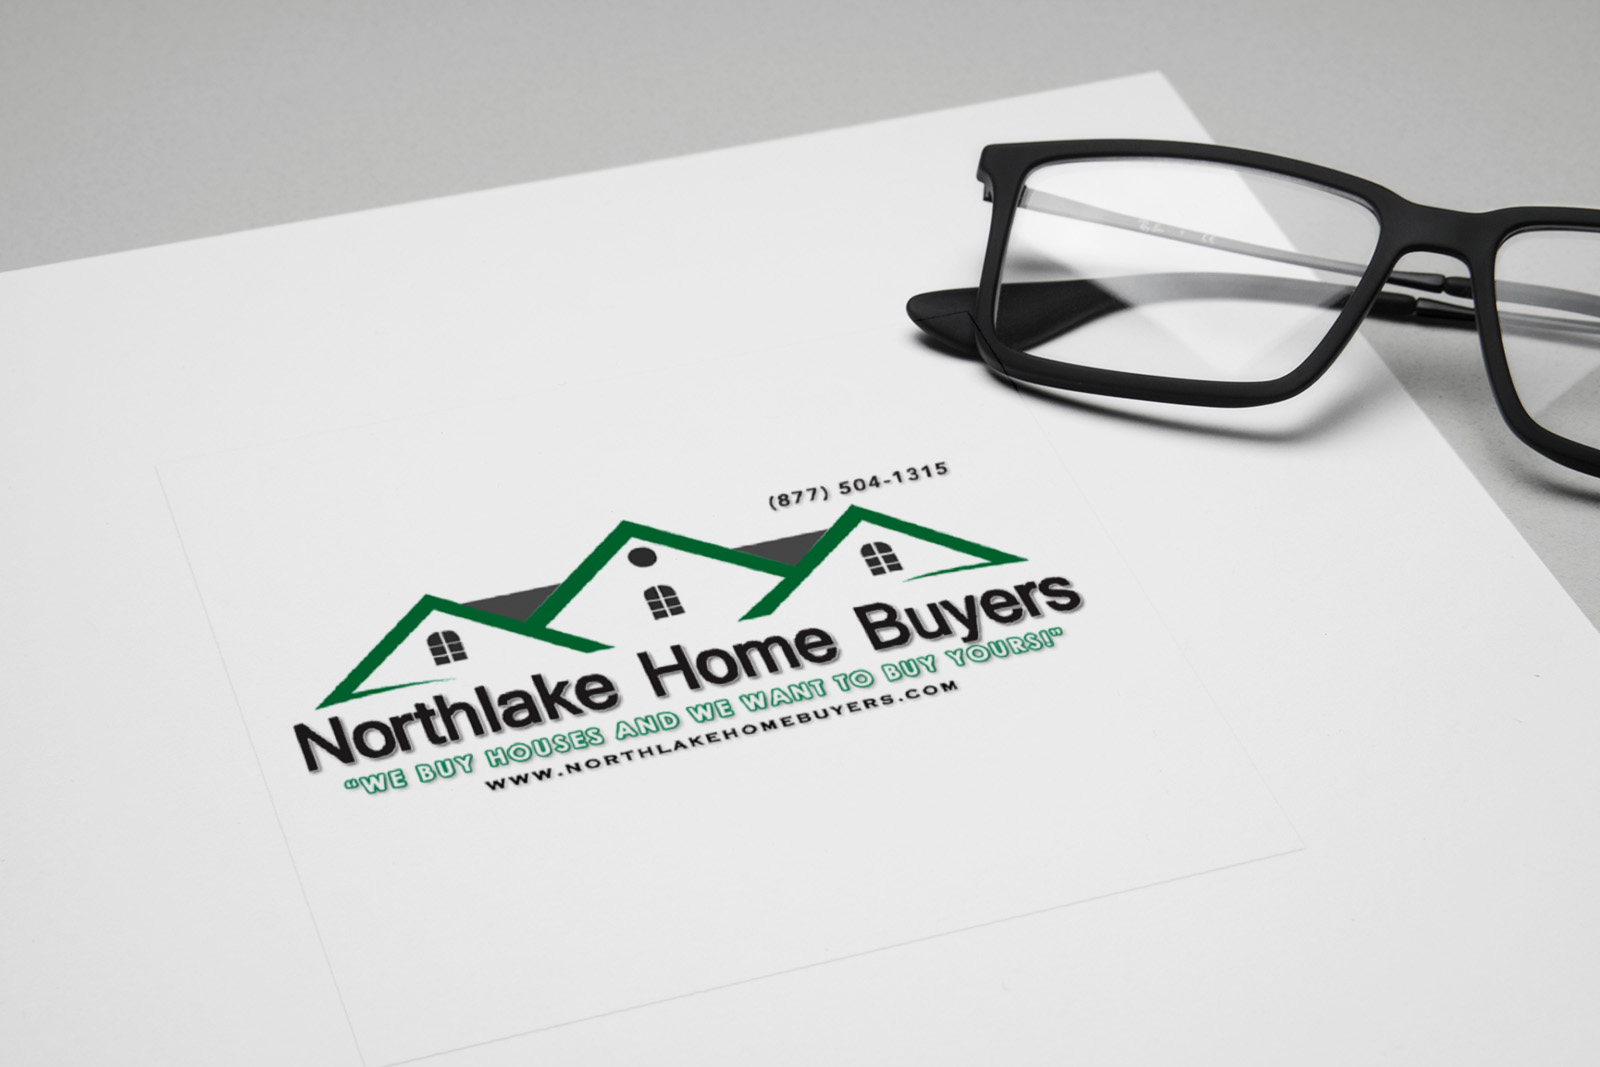 Northlake Home Buyers Logo Design